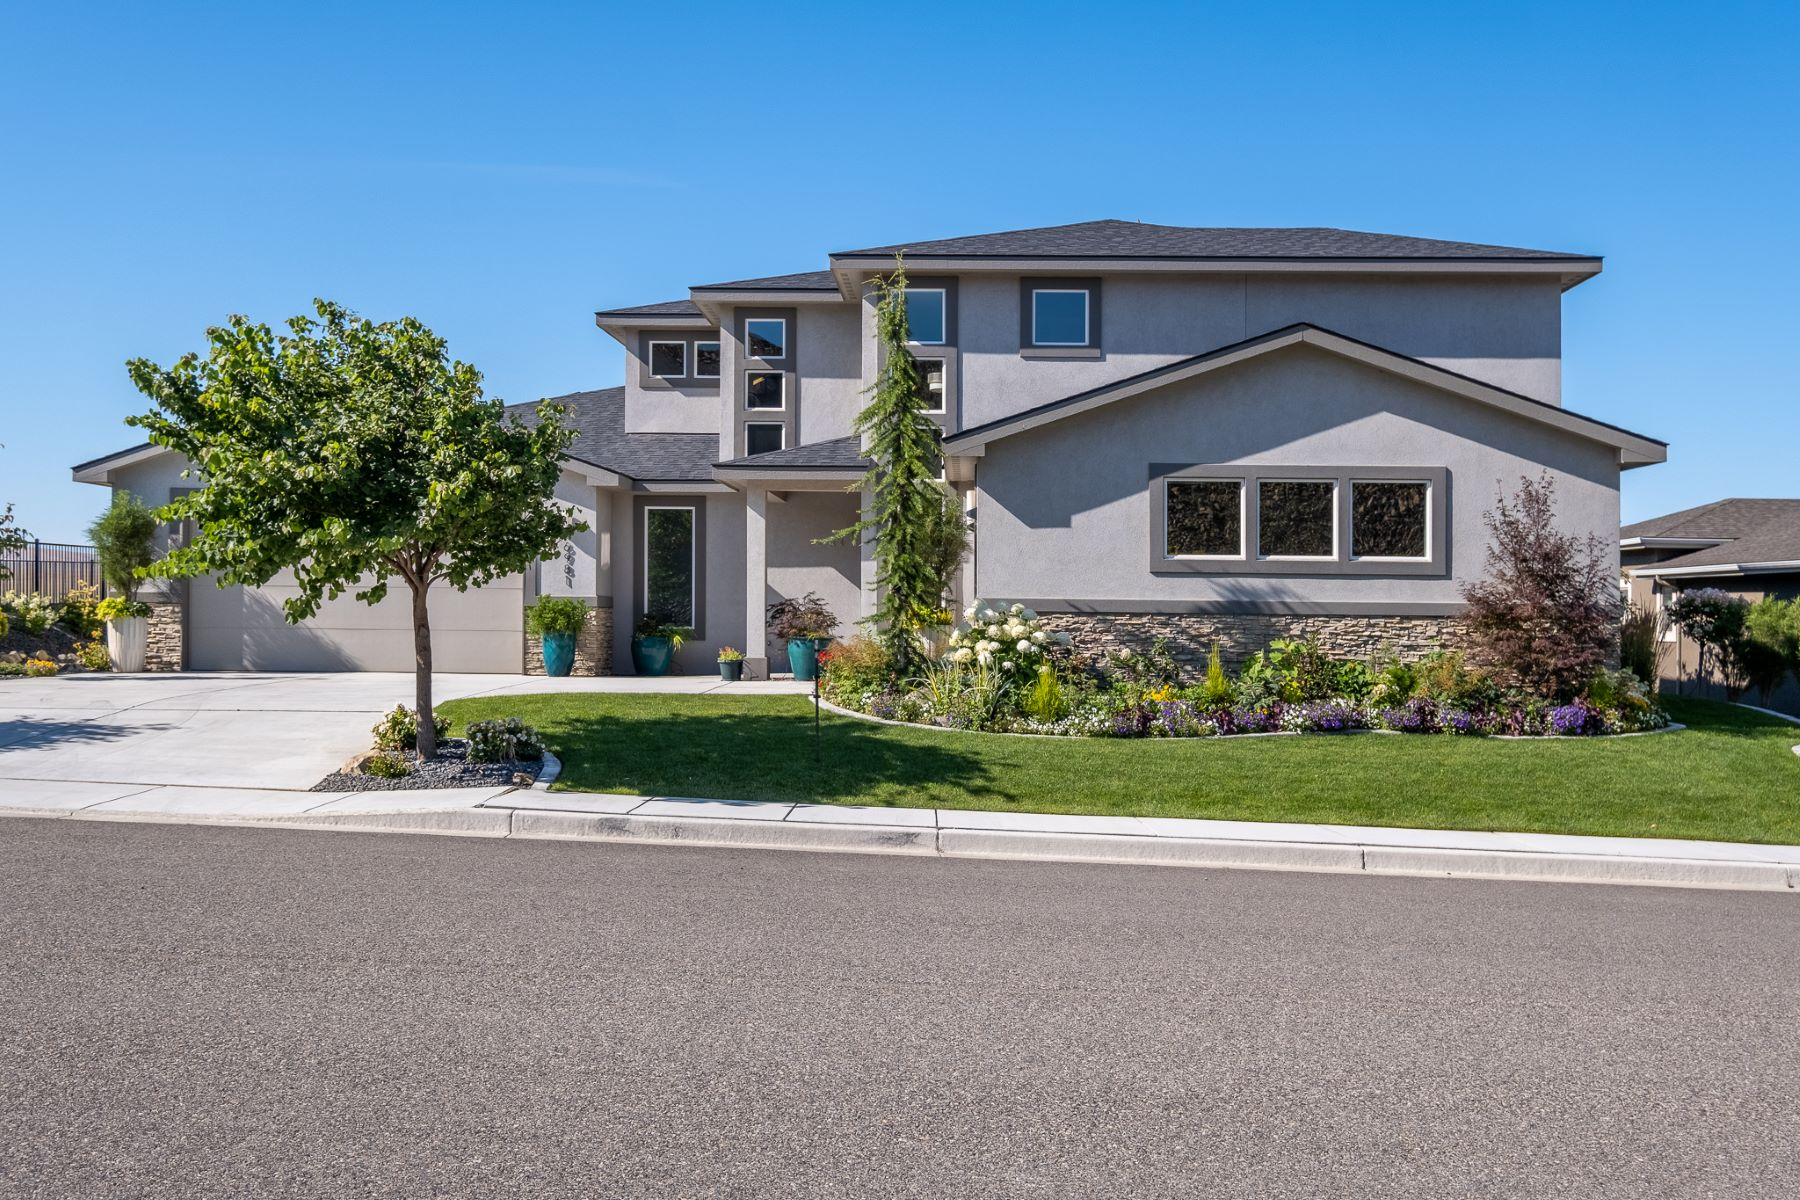 Single Family Homes for Sale at Unparalleled Craftsmanship, Beauty & Views 6981 W 23rd Ct Kennewick, Washington 99338 United States